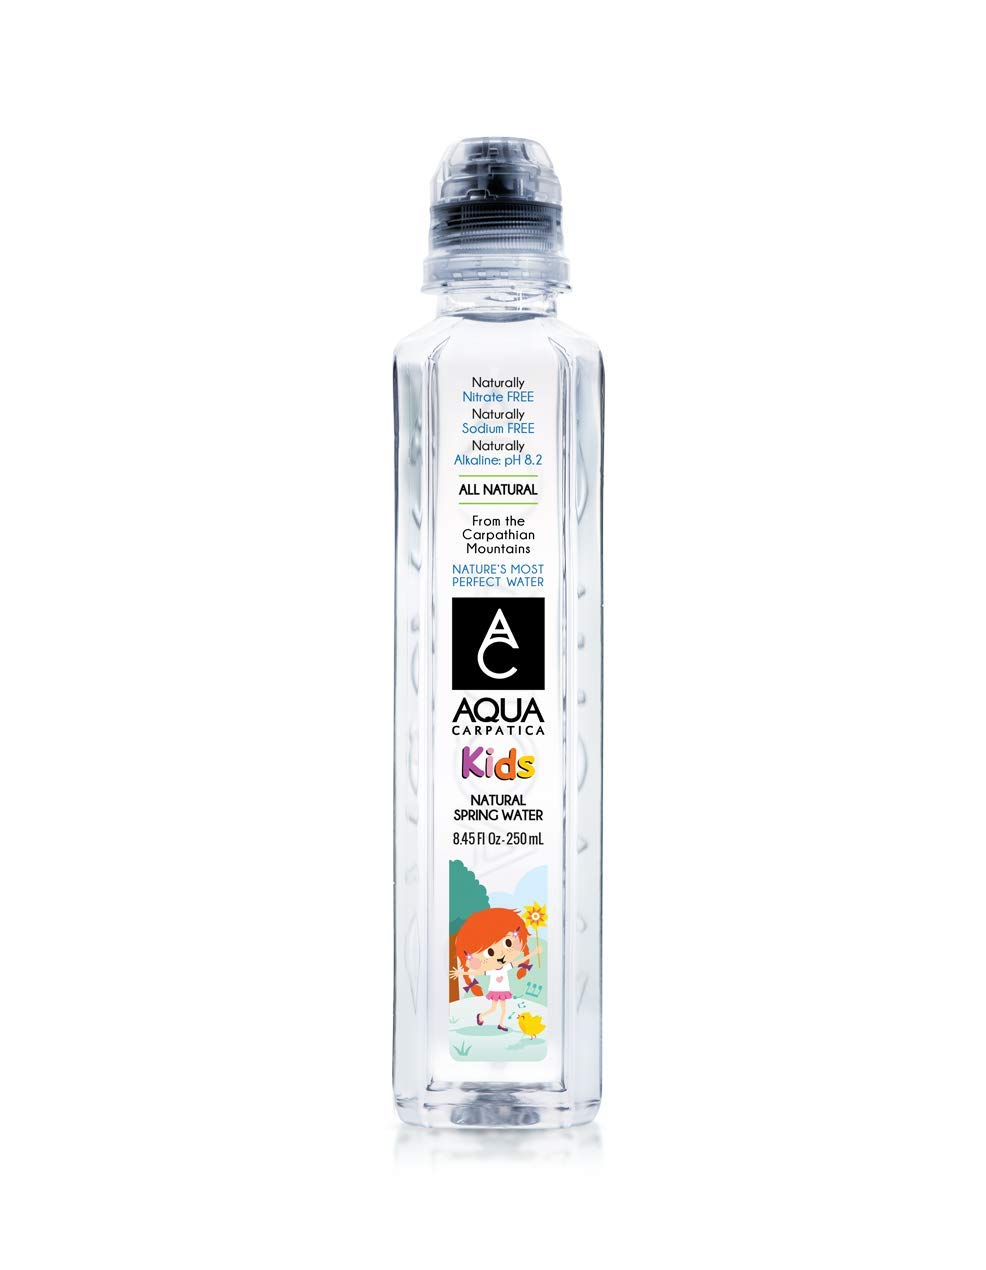 AQUA Carpatica Natural Spring Water for Kids, Babies and Infants, Naturally Filtered Drinking Water (250 ml / 8.45 oz.) 24 Pack